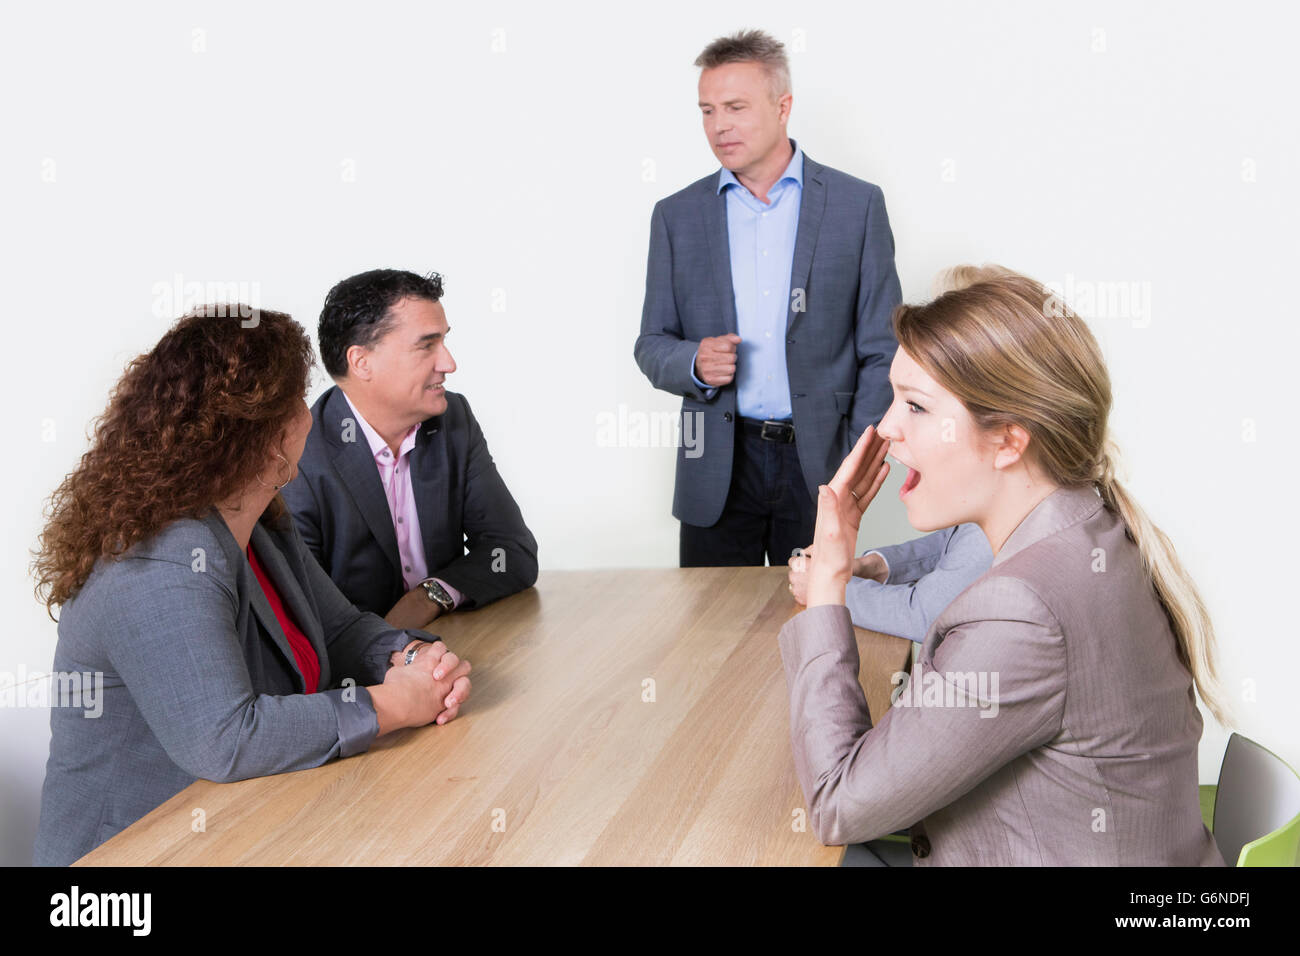 Business presentation in conference room, business person standing and  coworkers sitting at the desk and listening - Stock Image